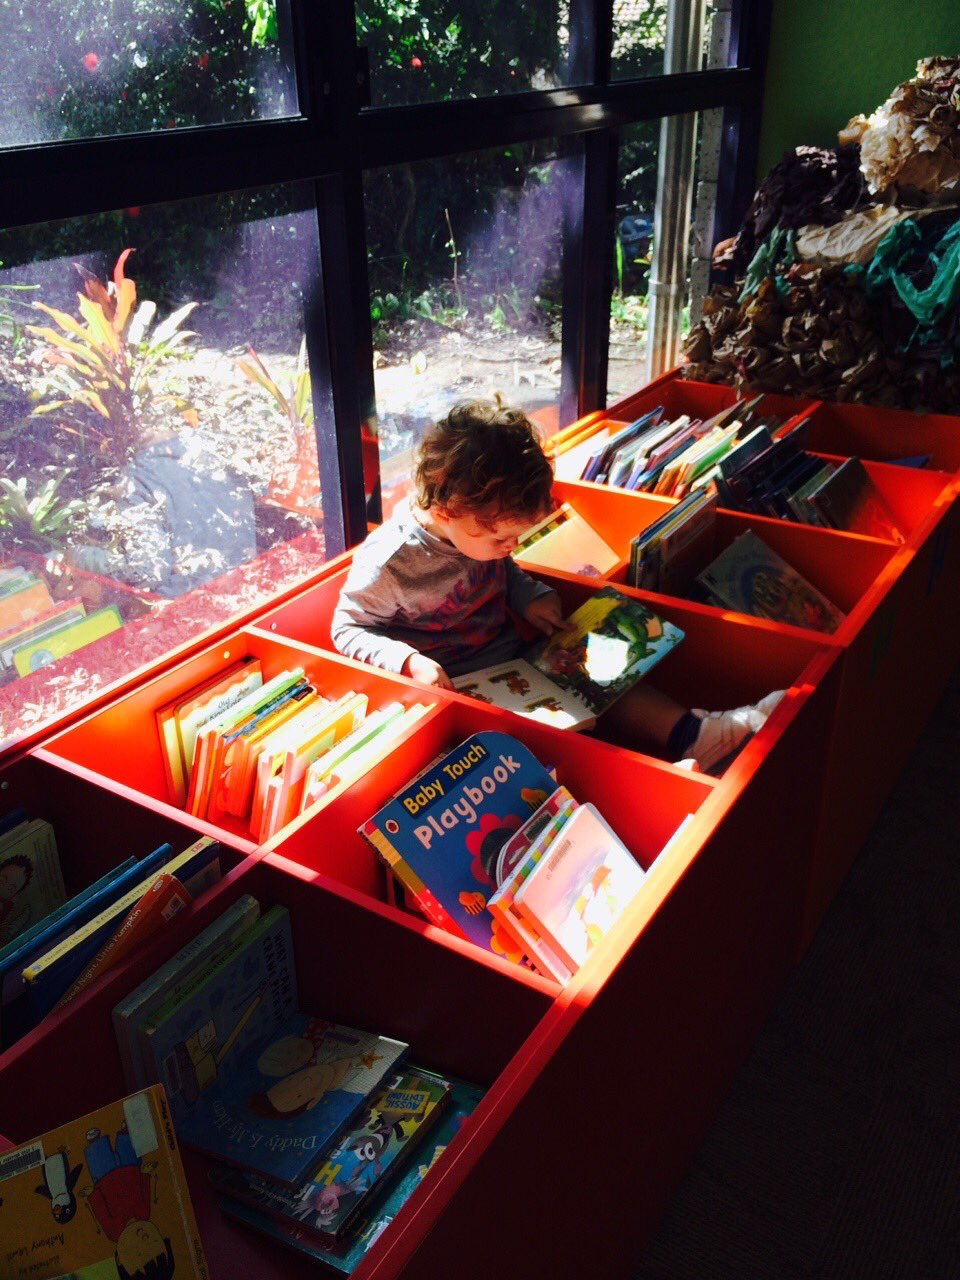 @Maeradi @IndigoNight7 Grandson of a #librarian deciding that sun, box & books make a perfect place to read https://t.co/k7xgyJ8p91